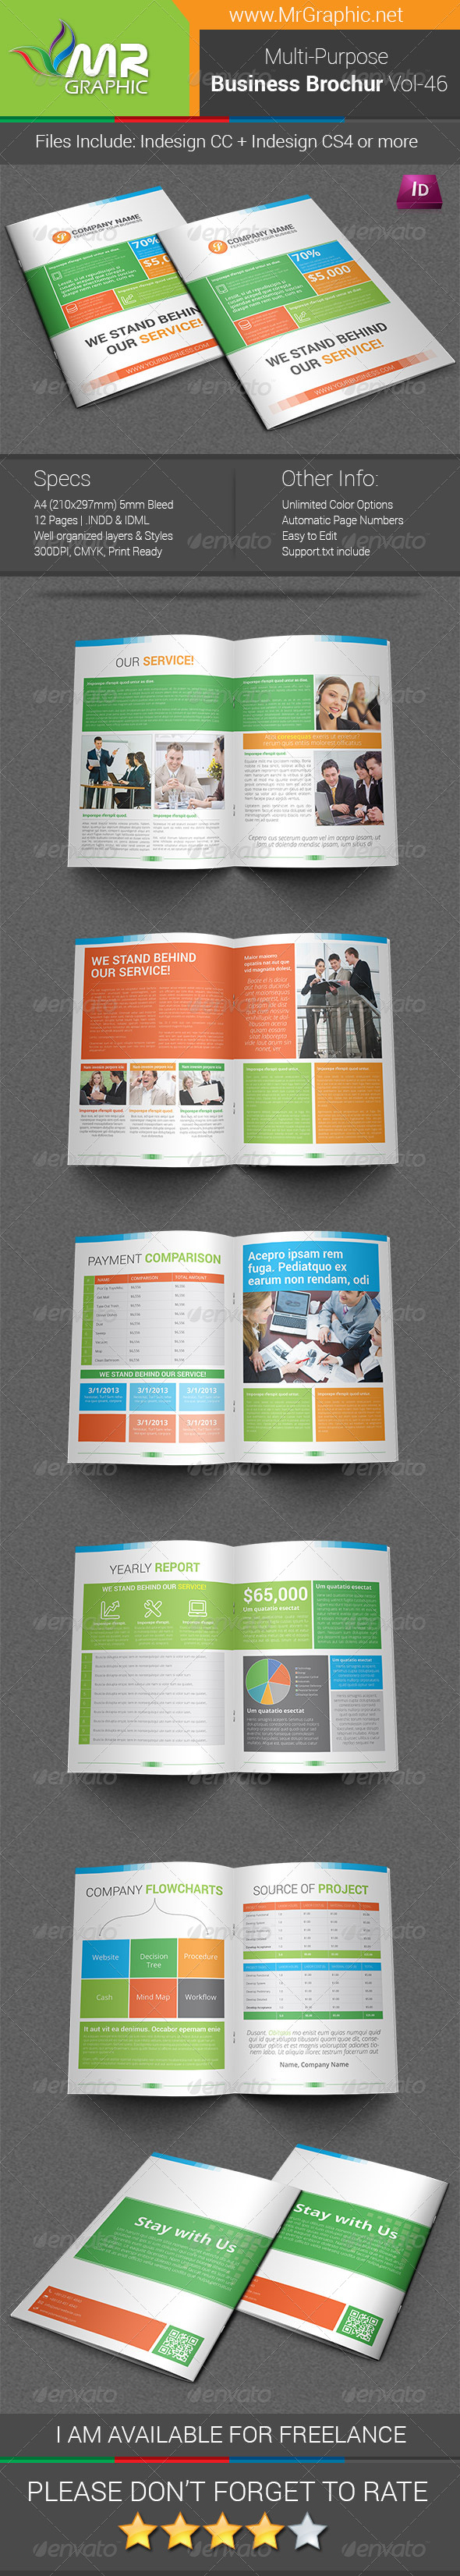 Multipurpose Business Brochure Template Vol-46 - Corporate Brochures